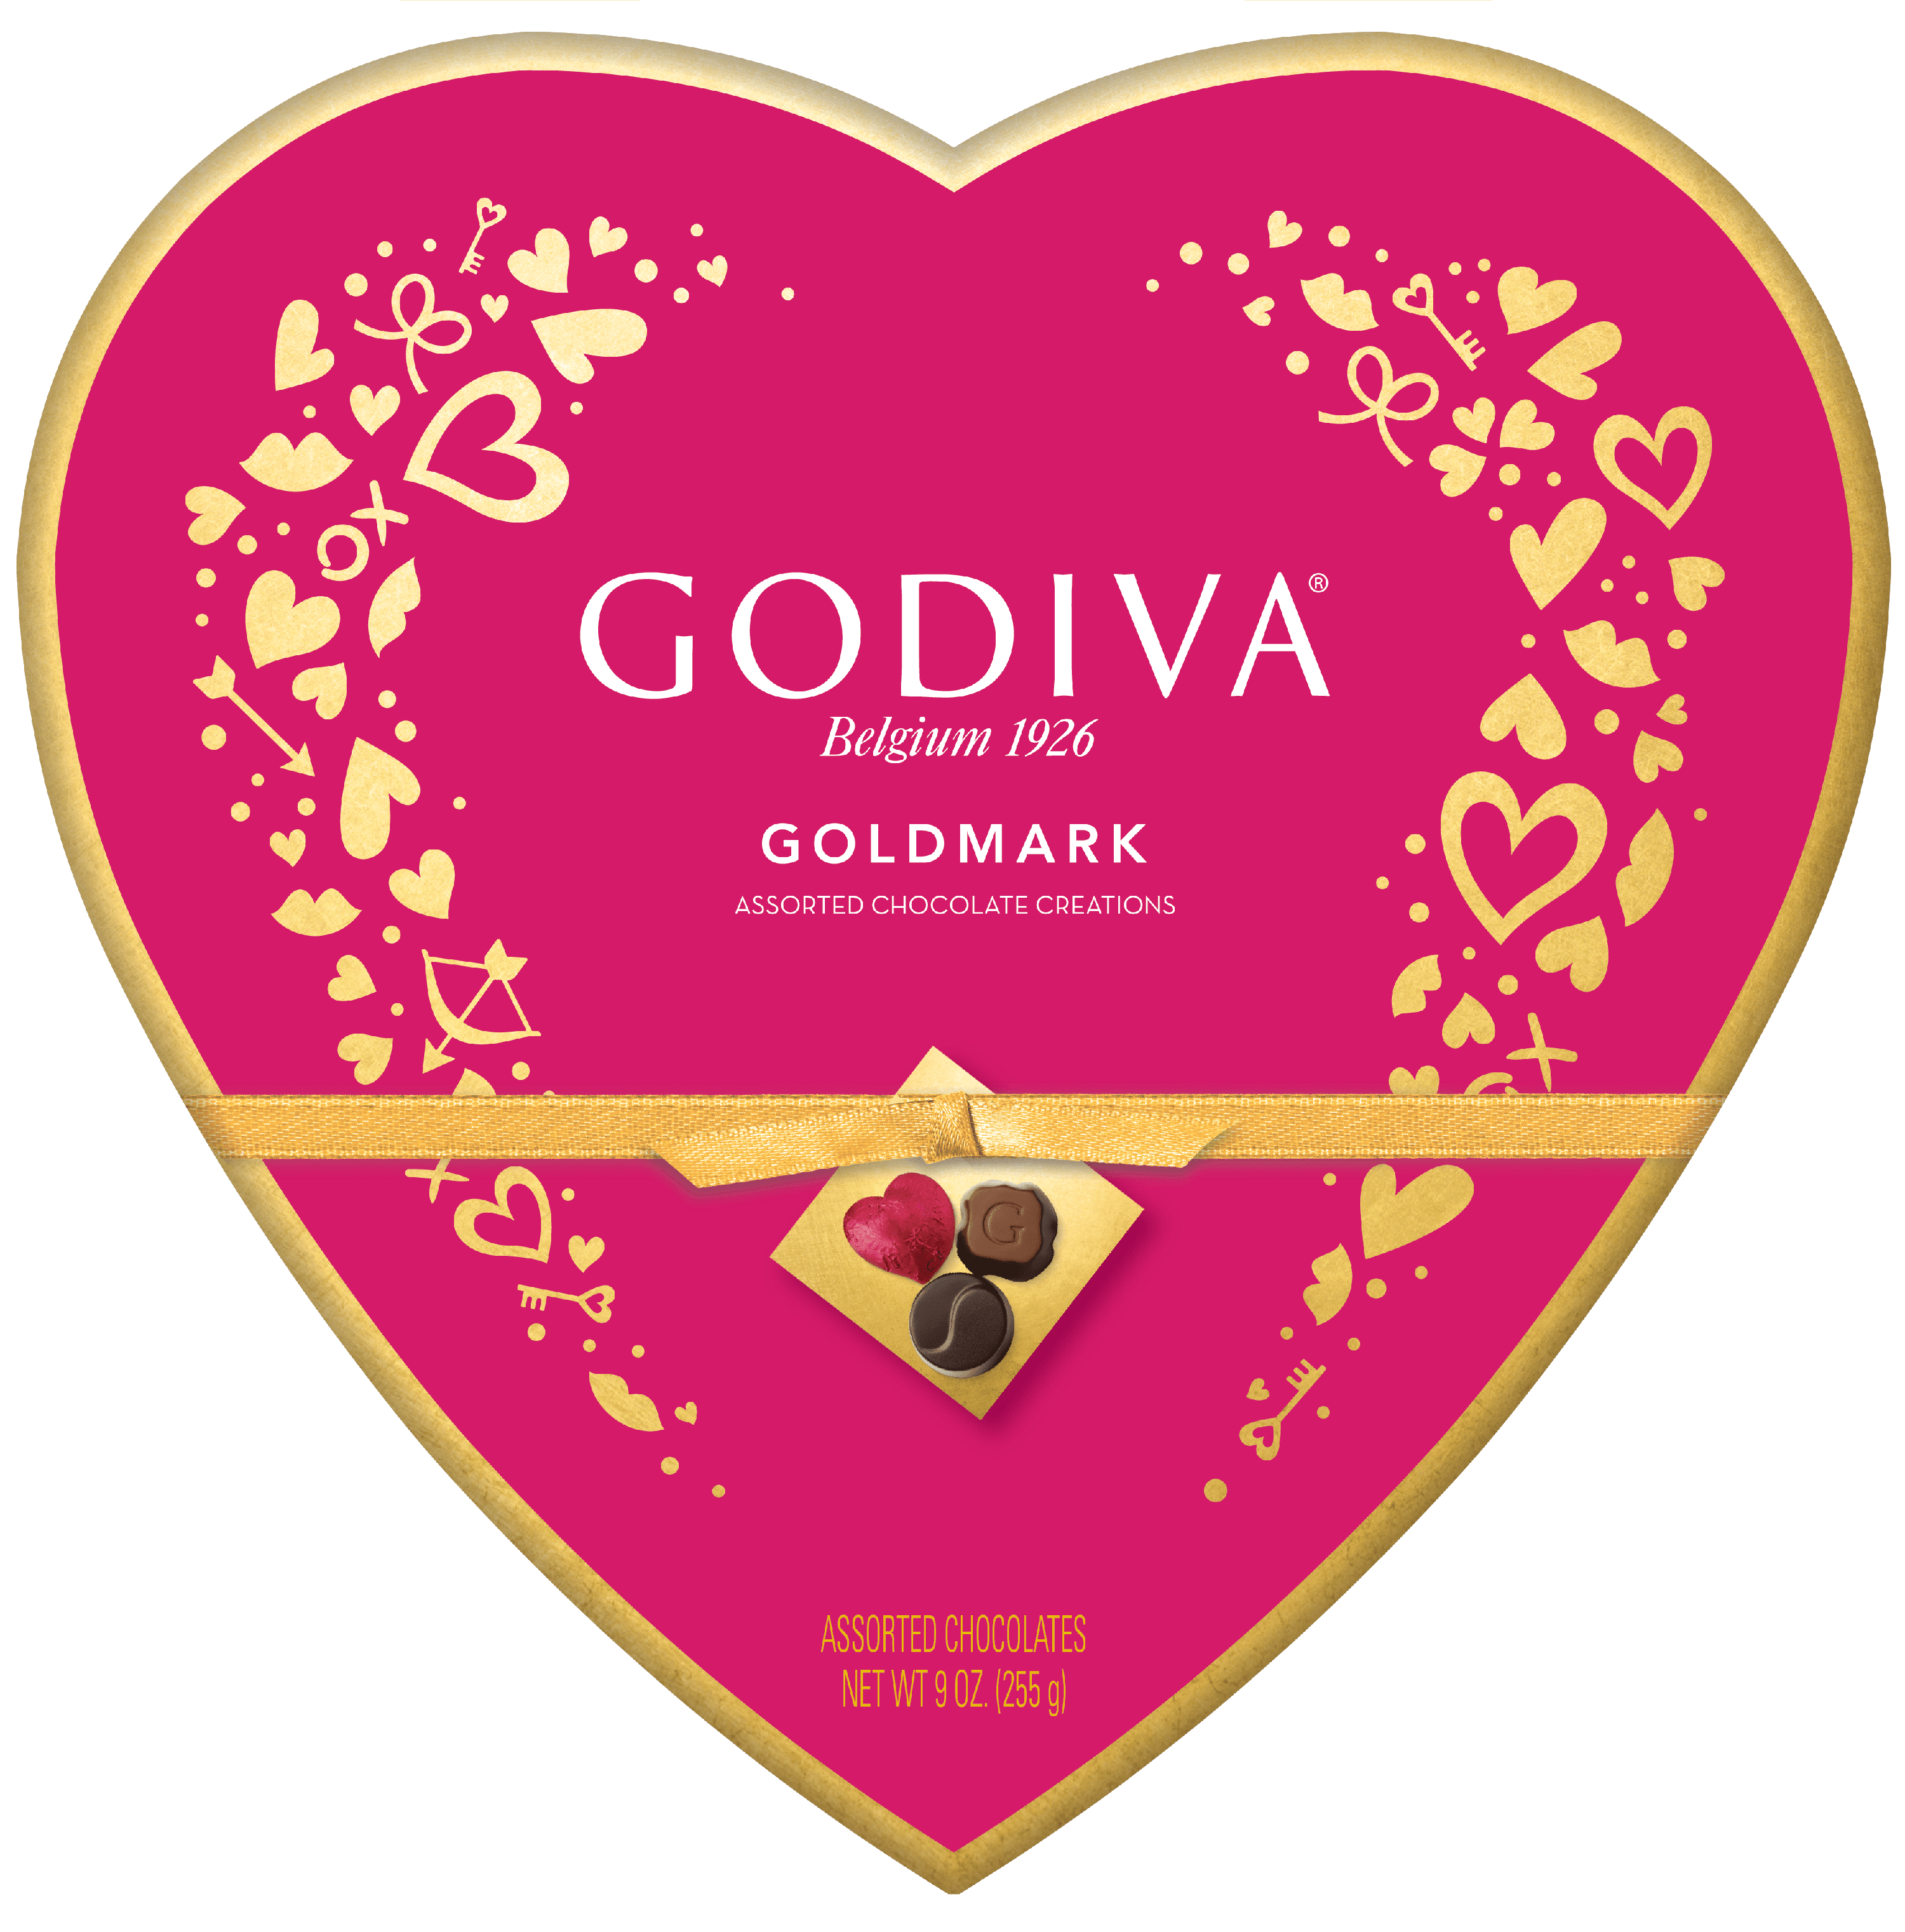 Godiva Valentine S Day Goldmark Assorted Chocolate Heart Box 24 Pieces 9 Oz Walmart Com Walmart Com